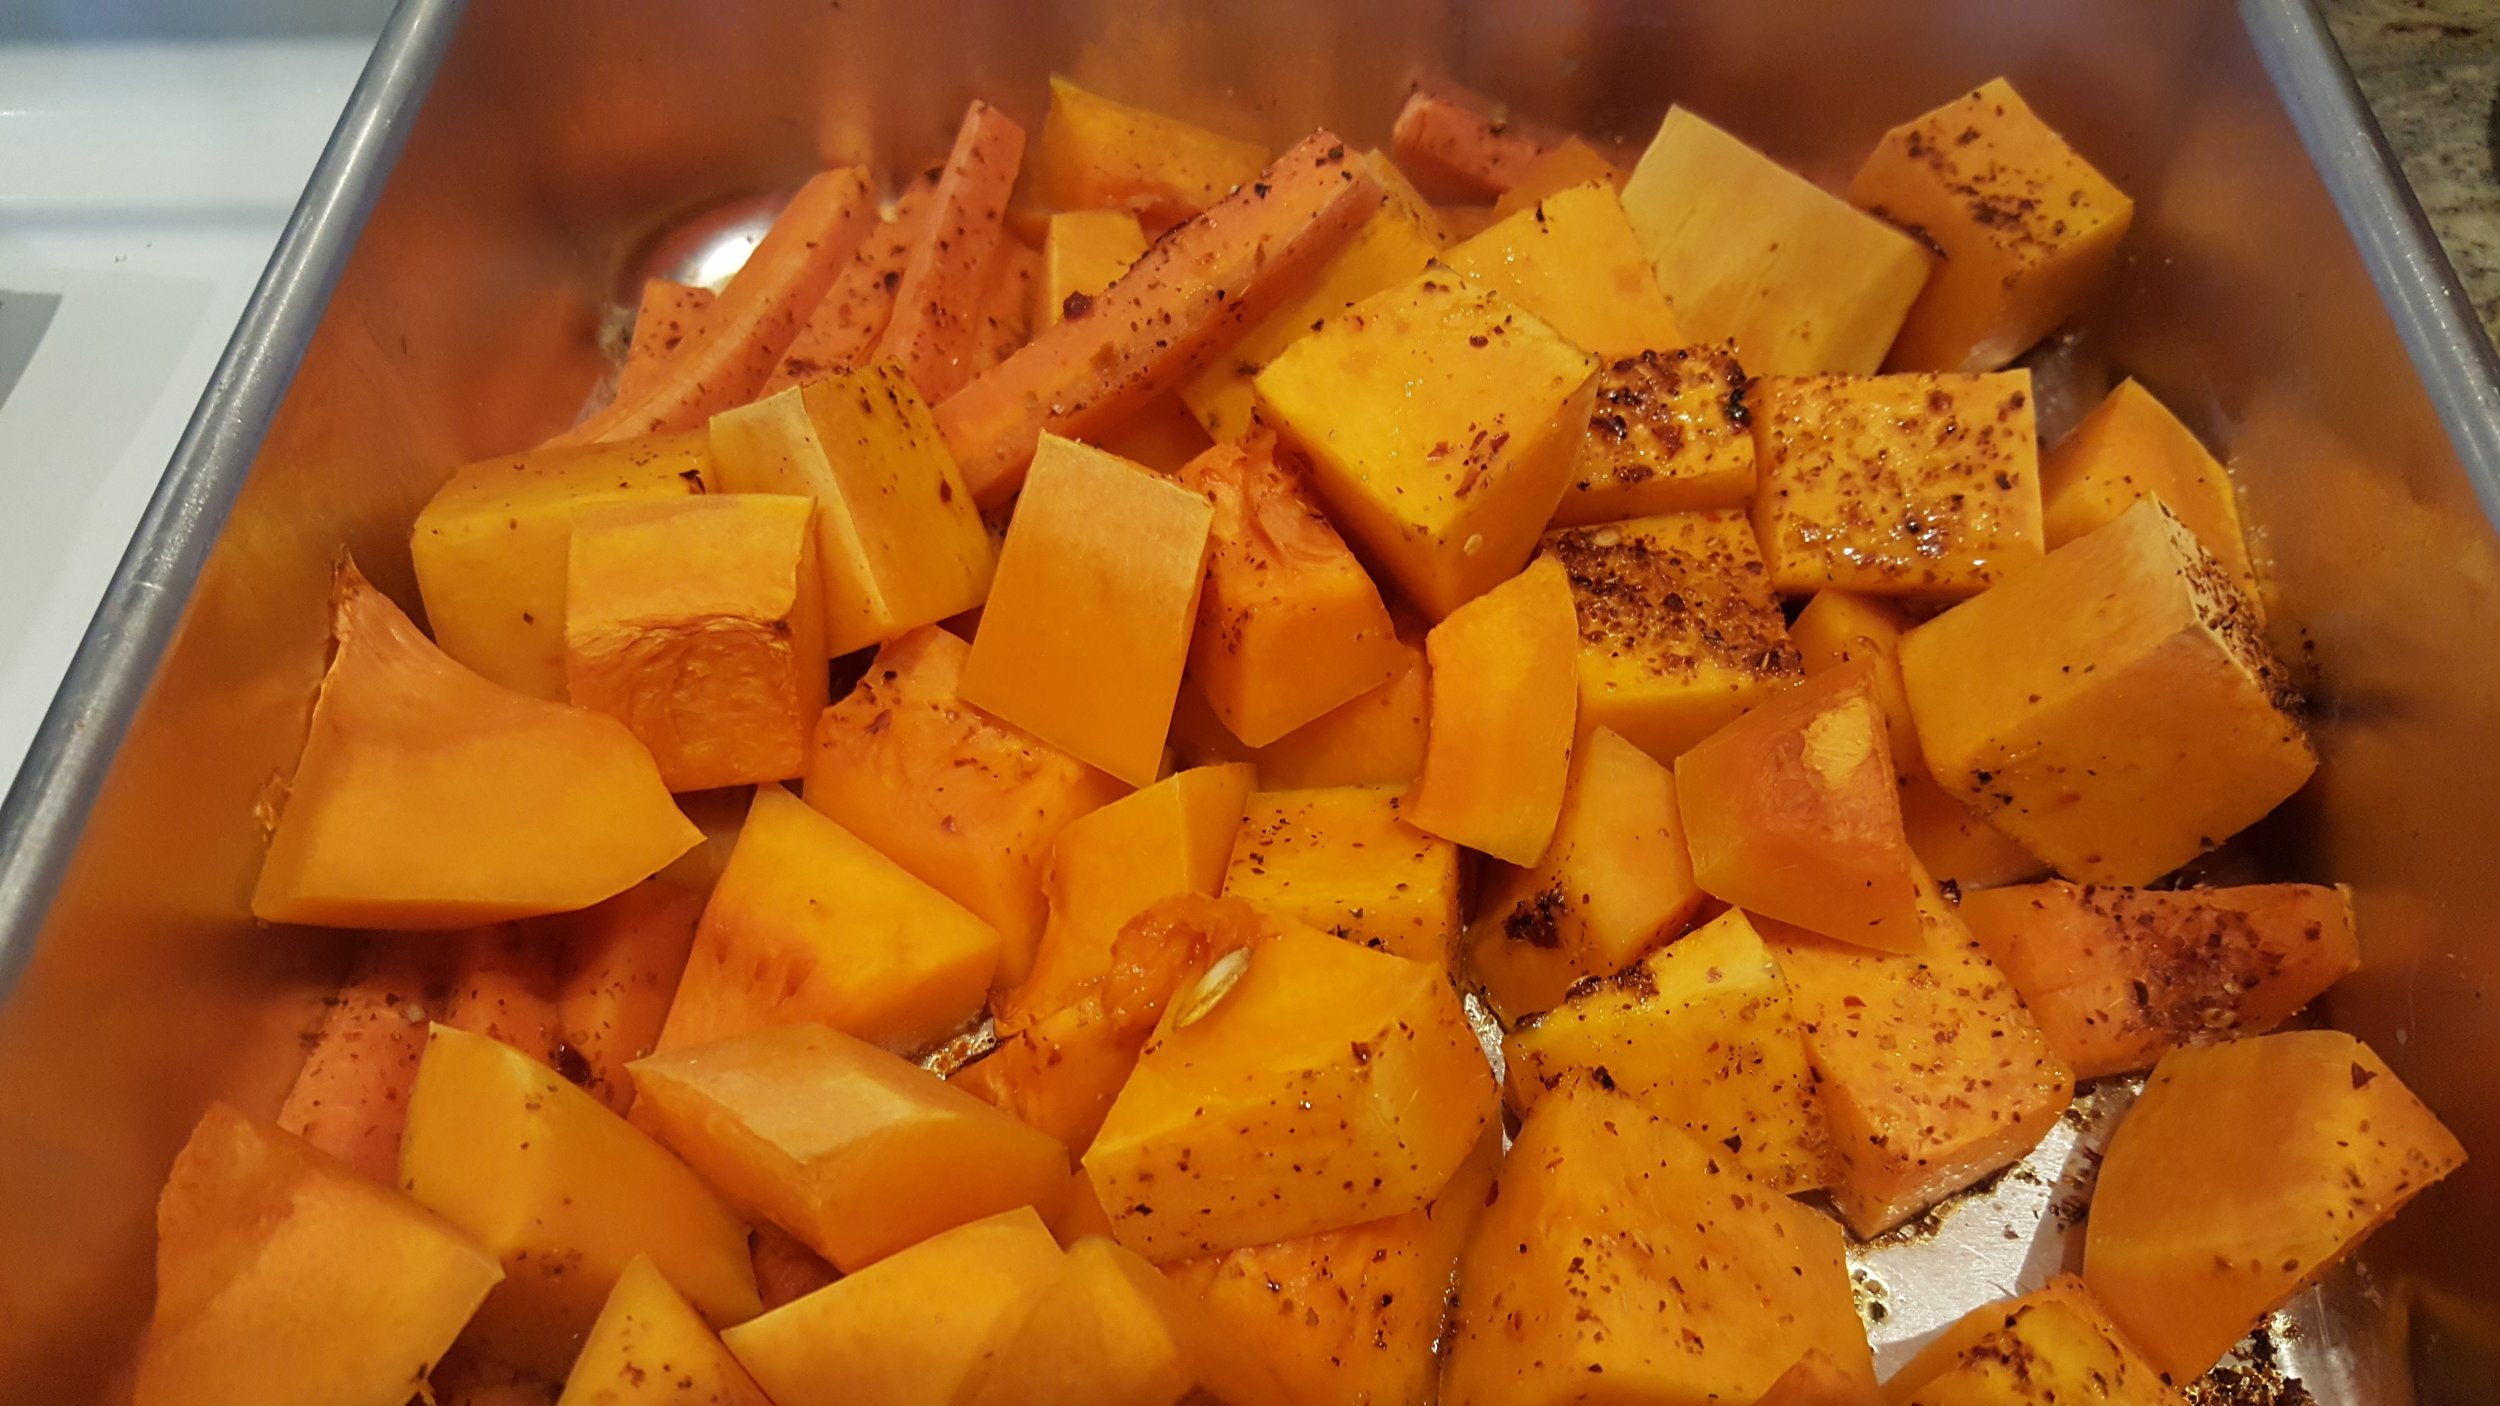 Lots of roasted butternut squash